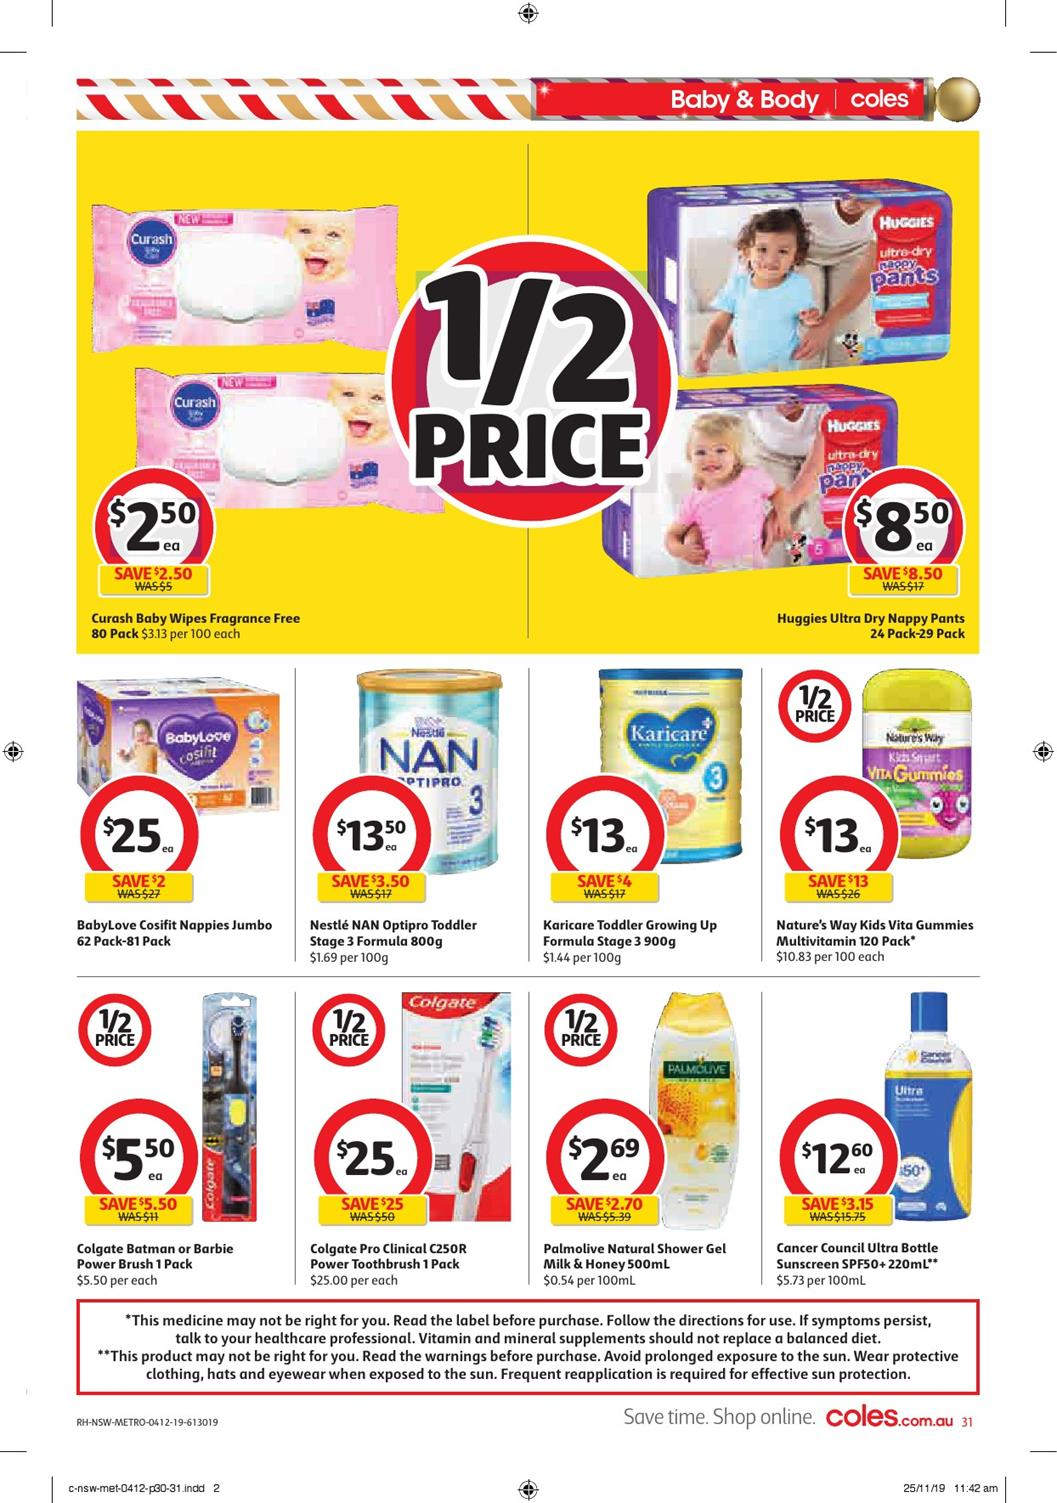 Coles Catalogue Baby Care Half-Price Sale 4 - 10 Dec 2019